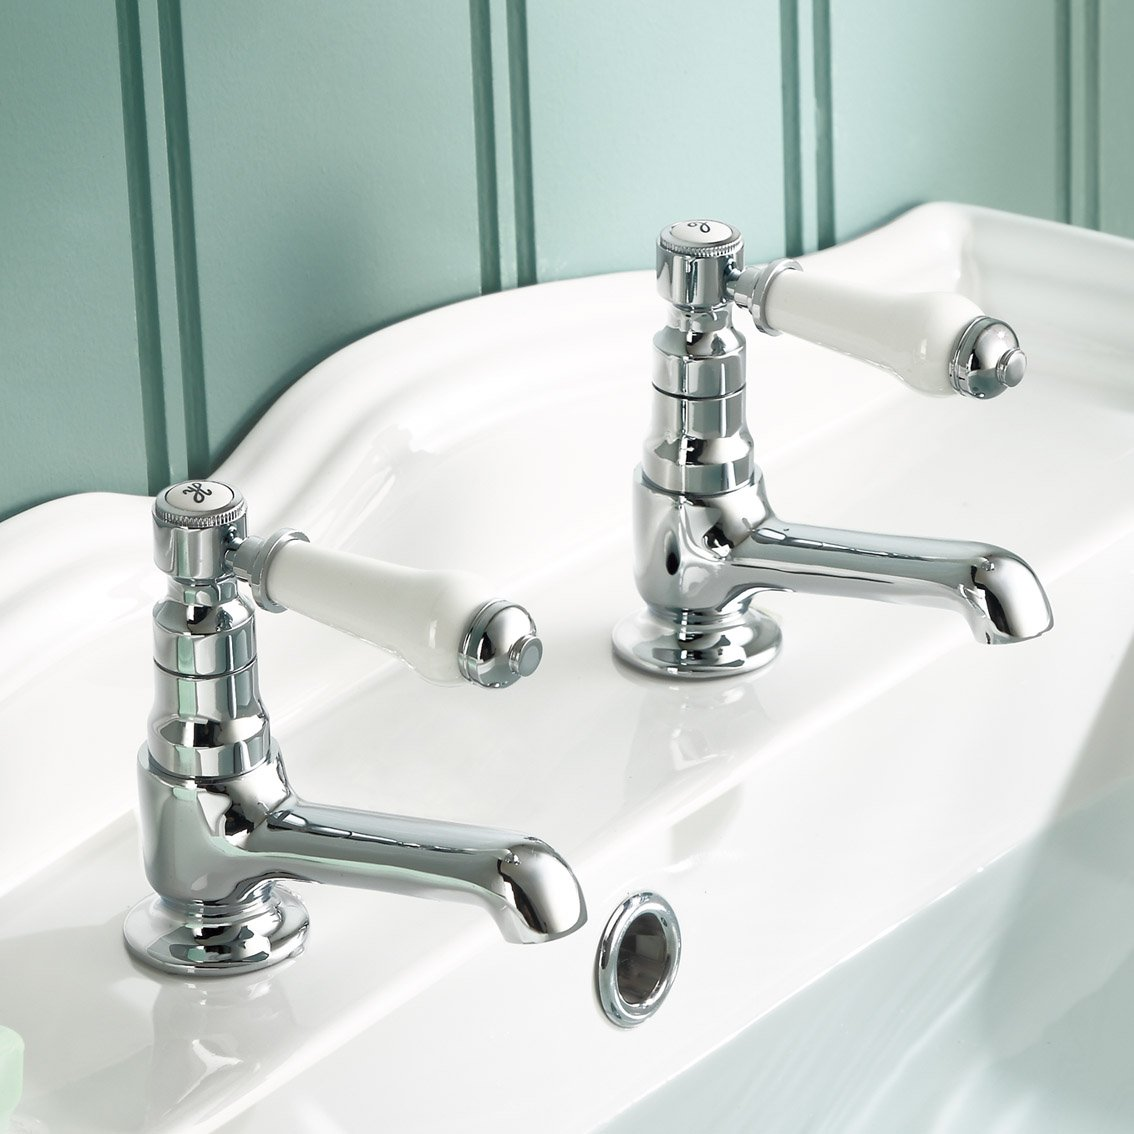 iBathUK | Traditional Pair of Hot and Cold Basin Sink Taps Chrome ...